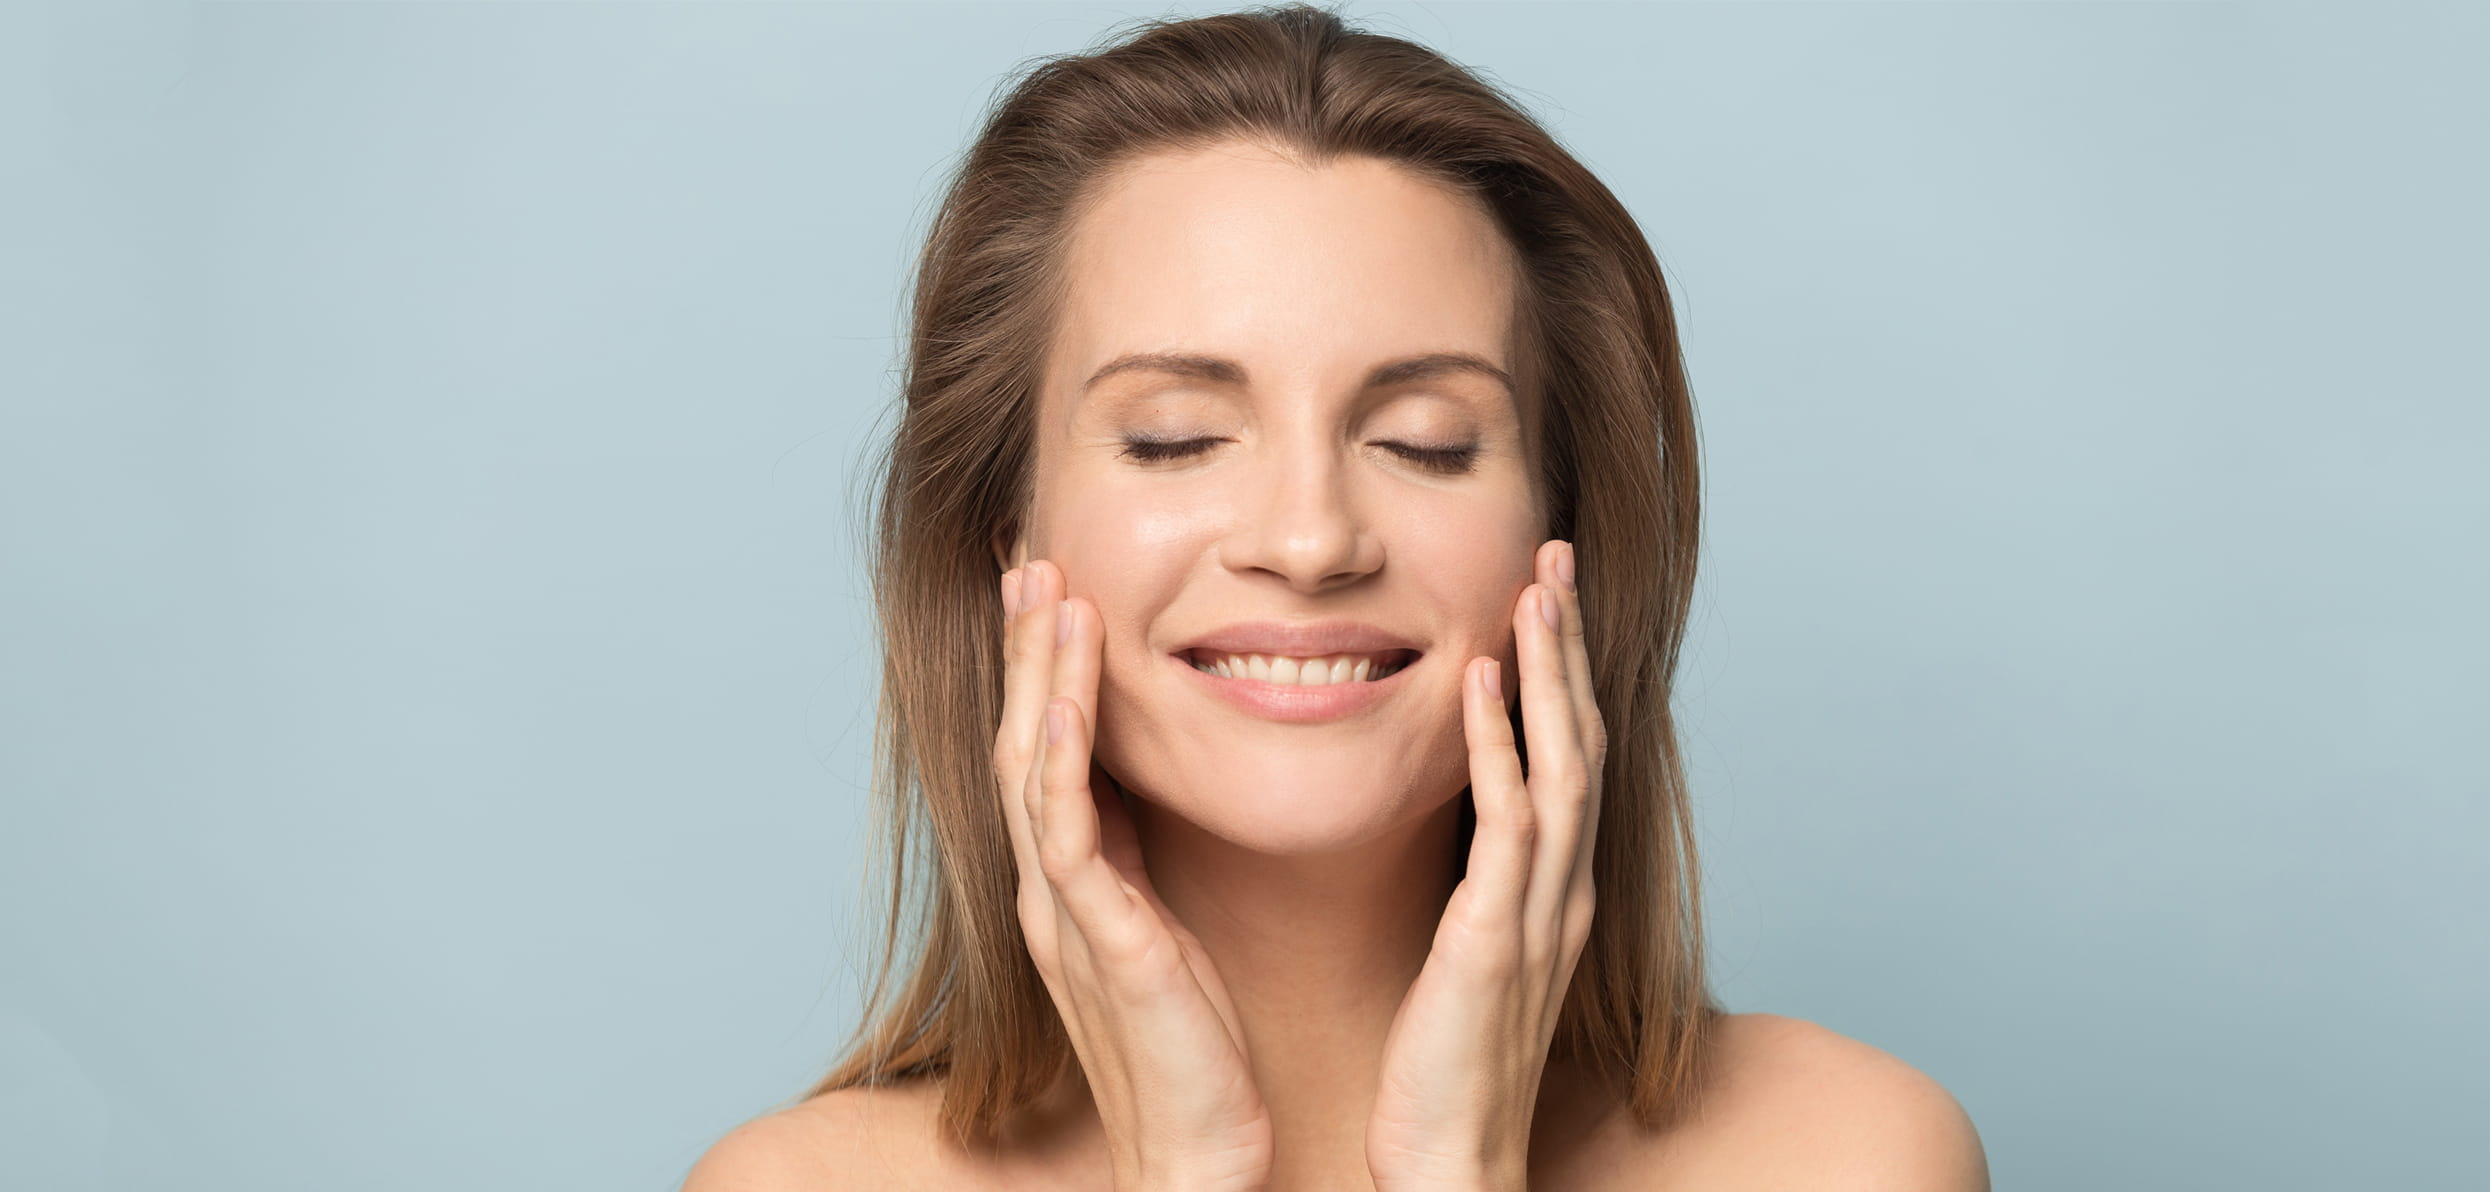 Women touching her face - Acne Treatments: 5 Adult Acne Prevention Techniques